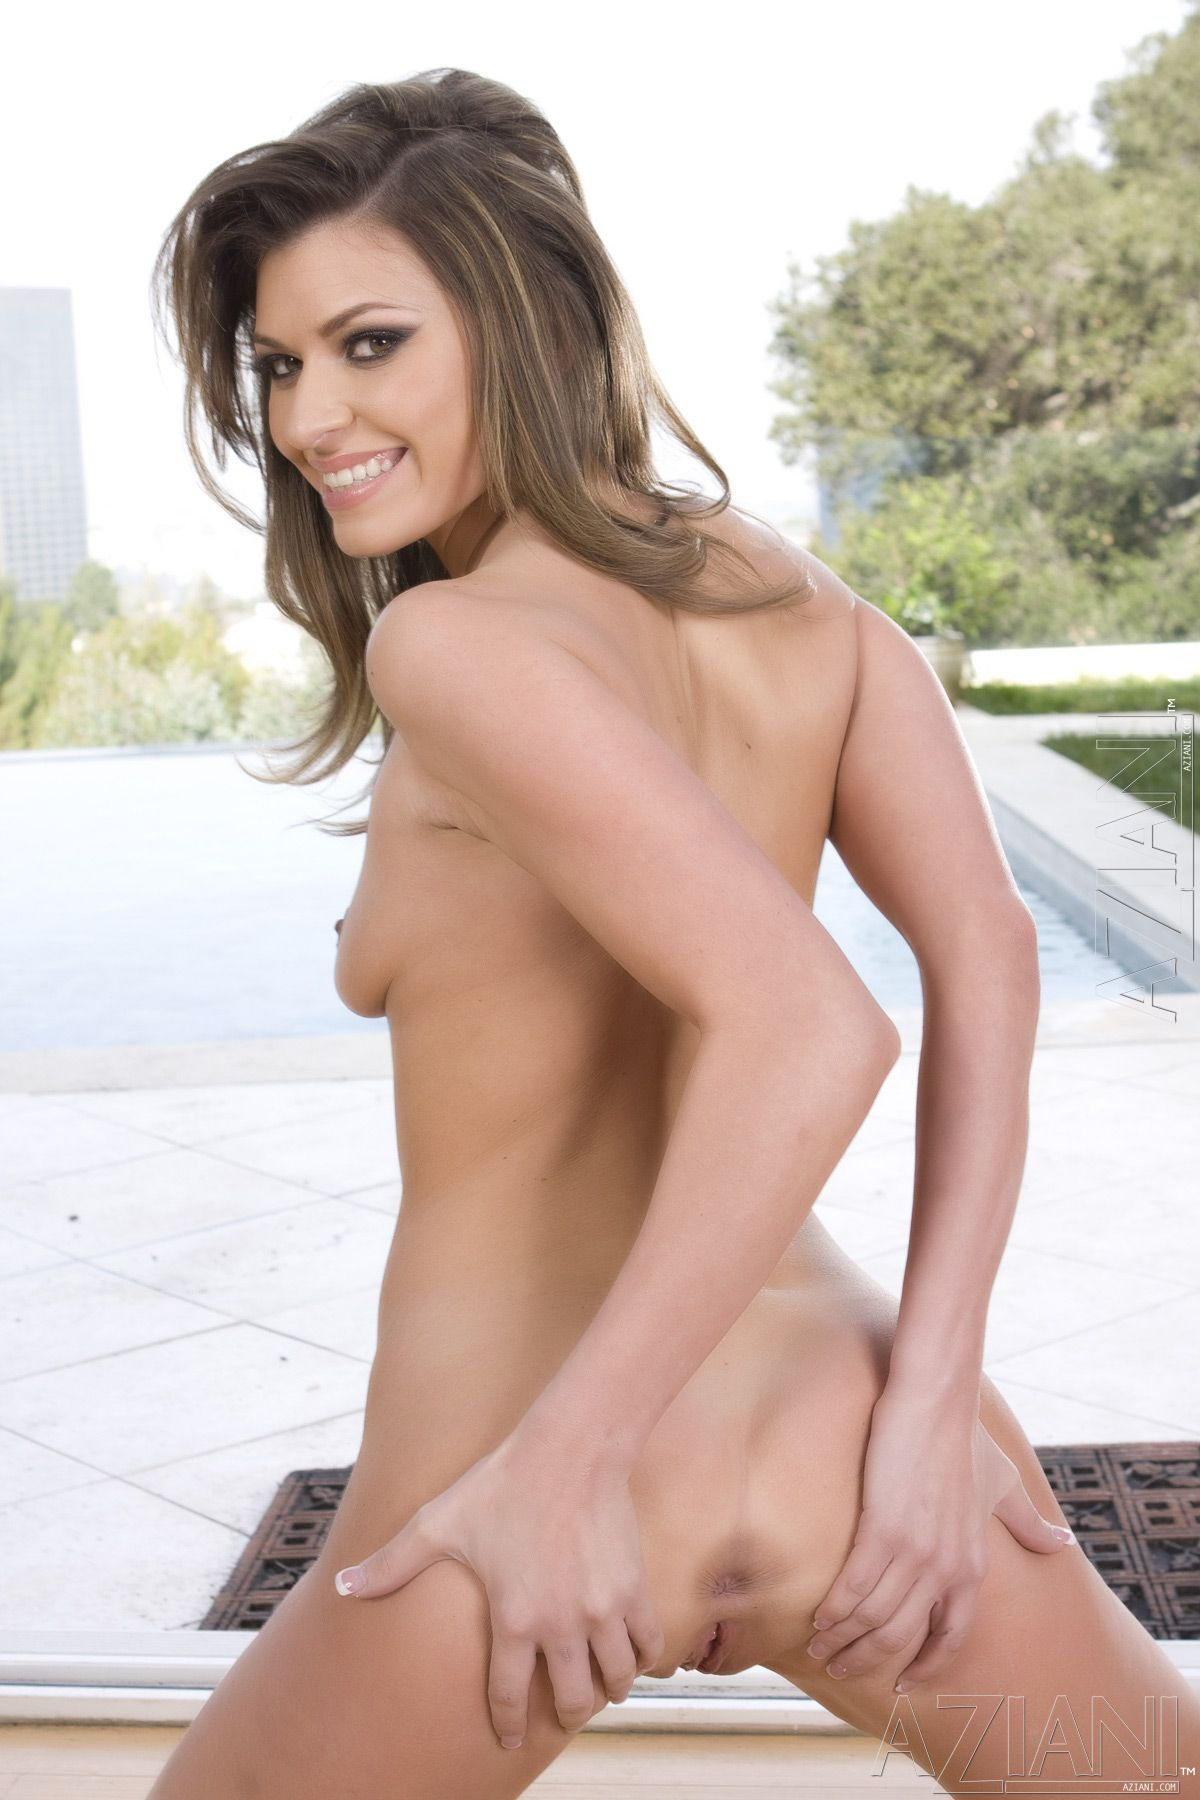 Better, perhaps, Victoria lawson nude pussy